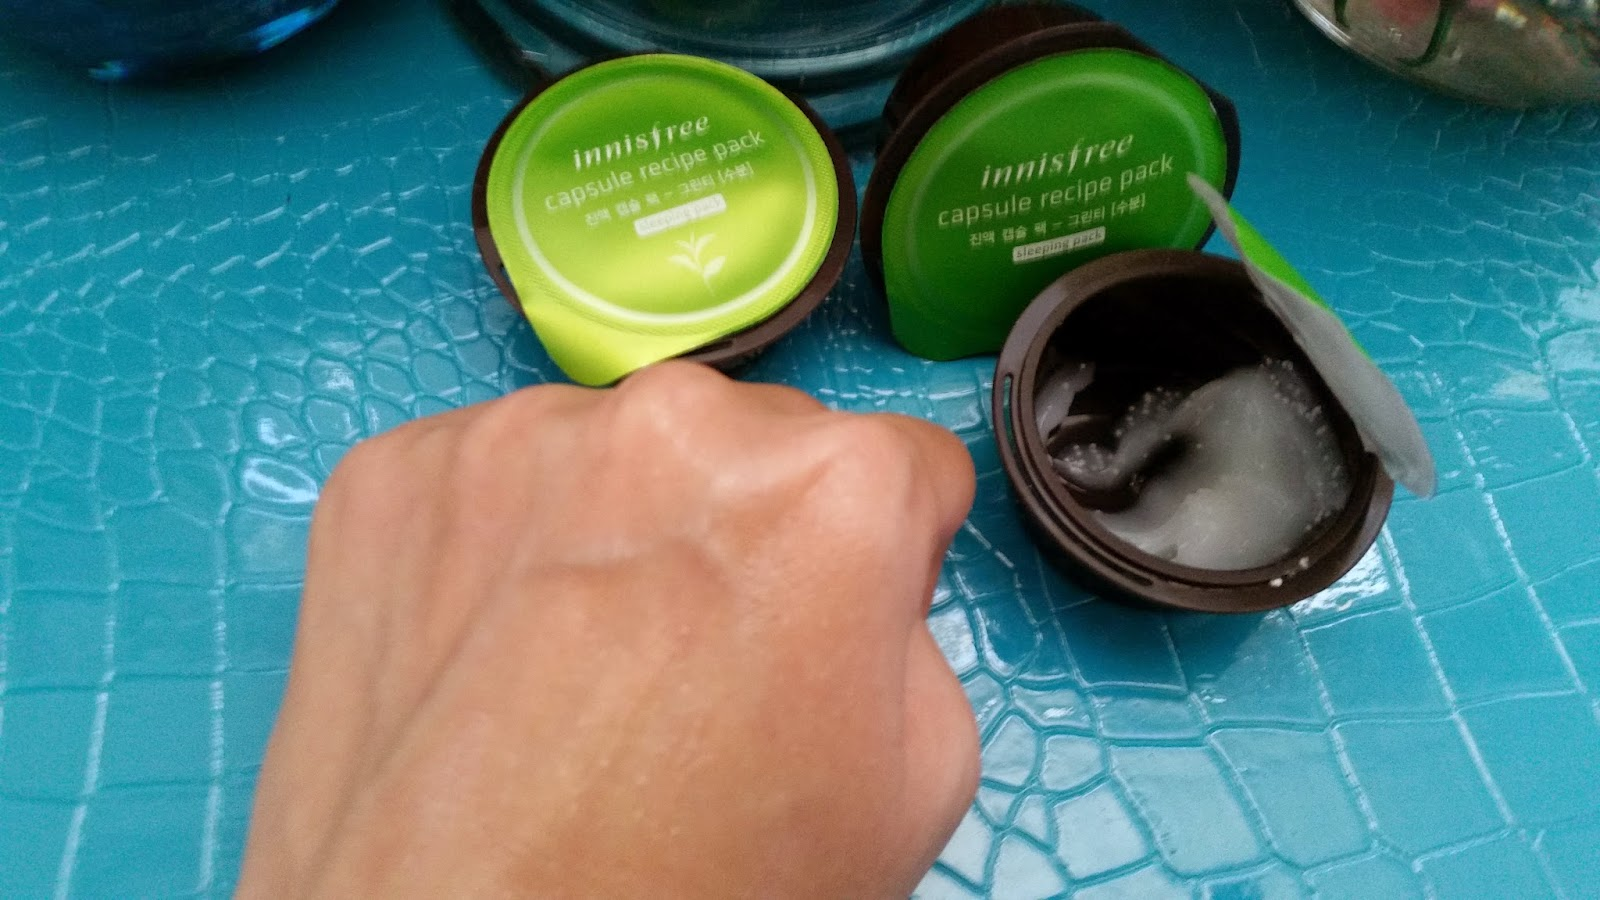 Green Tea Sleeping Pack massaged in on the back of hand.